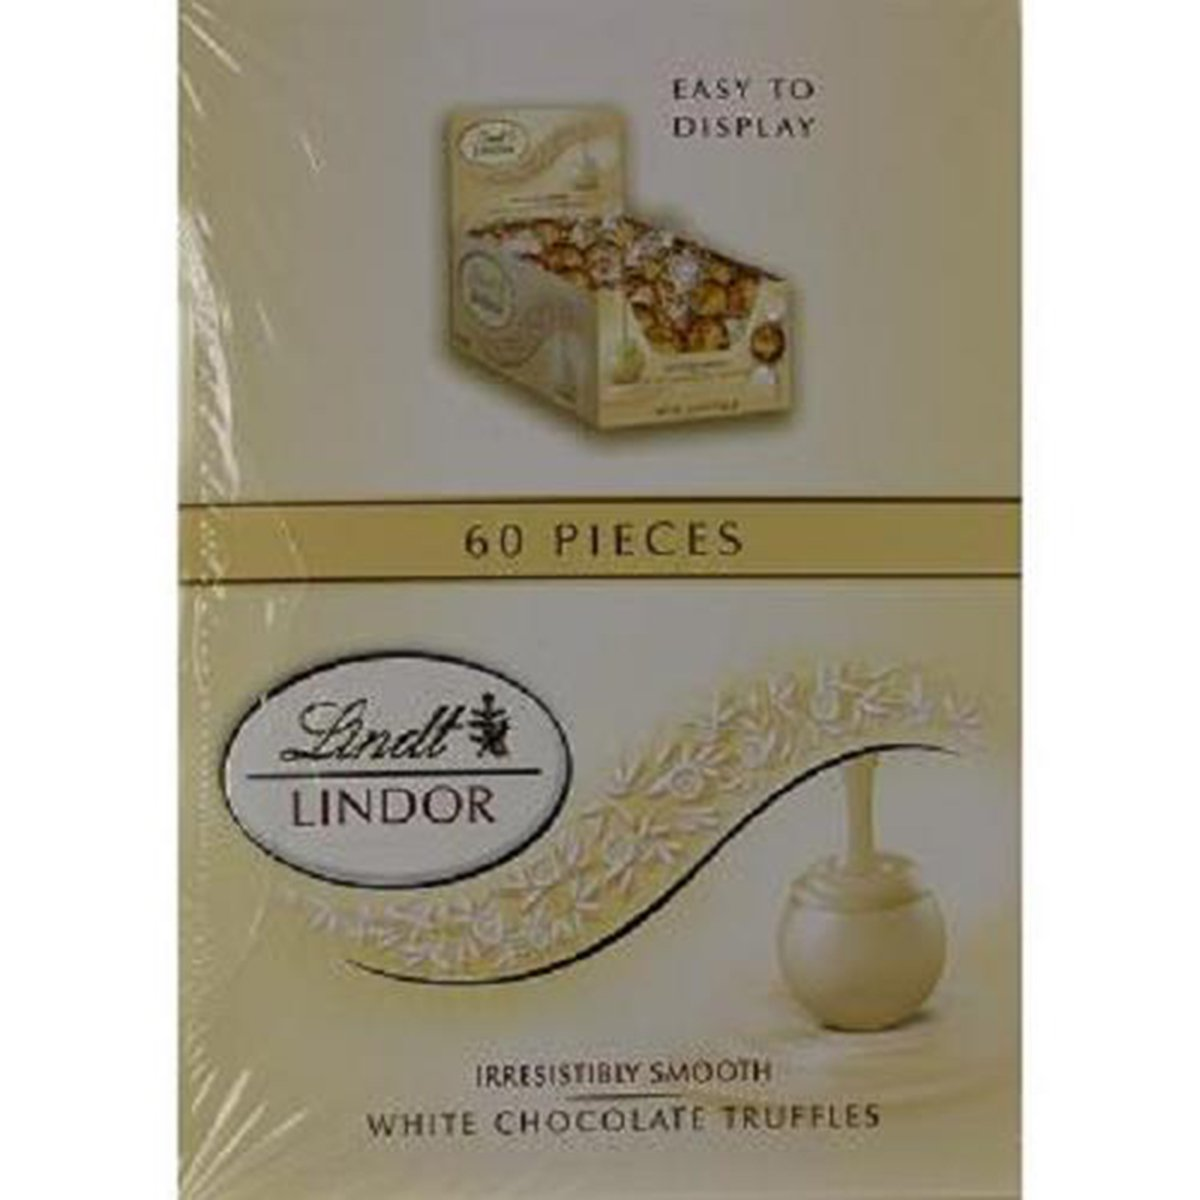 Product Of Lindt Lindor, White Chocolate Truffles, Count 60 - Chocolate Candy / Grab Varieties & Flavors